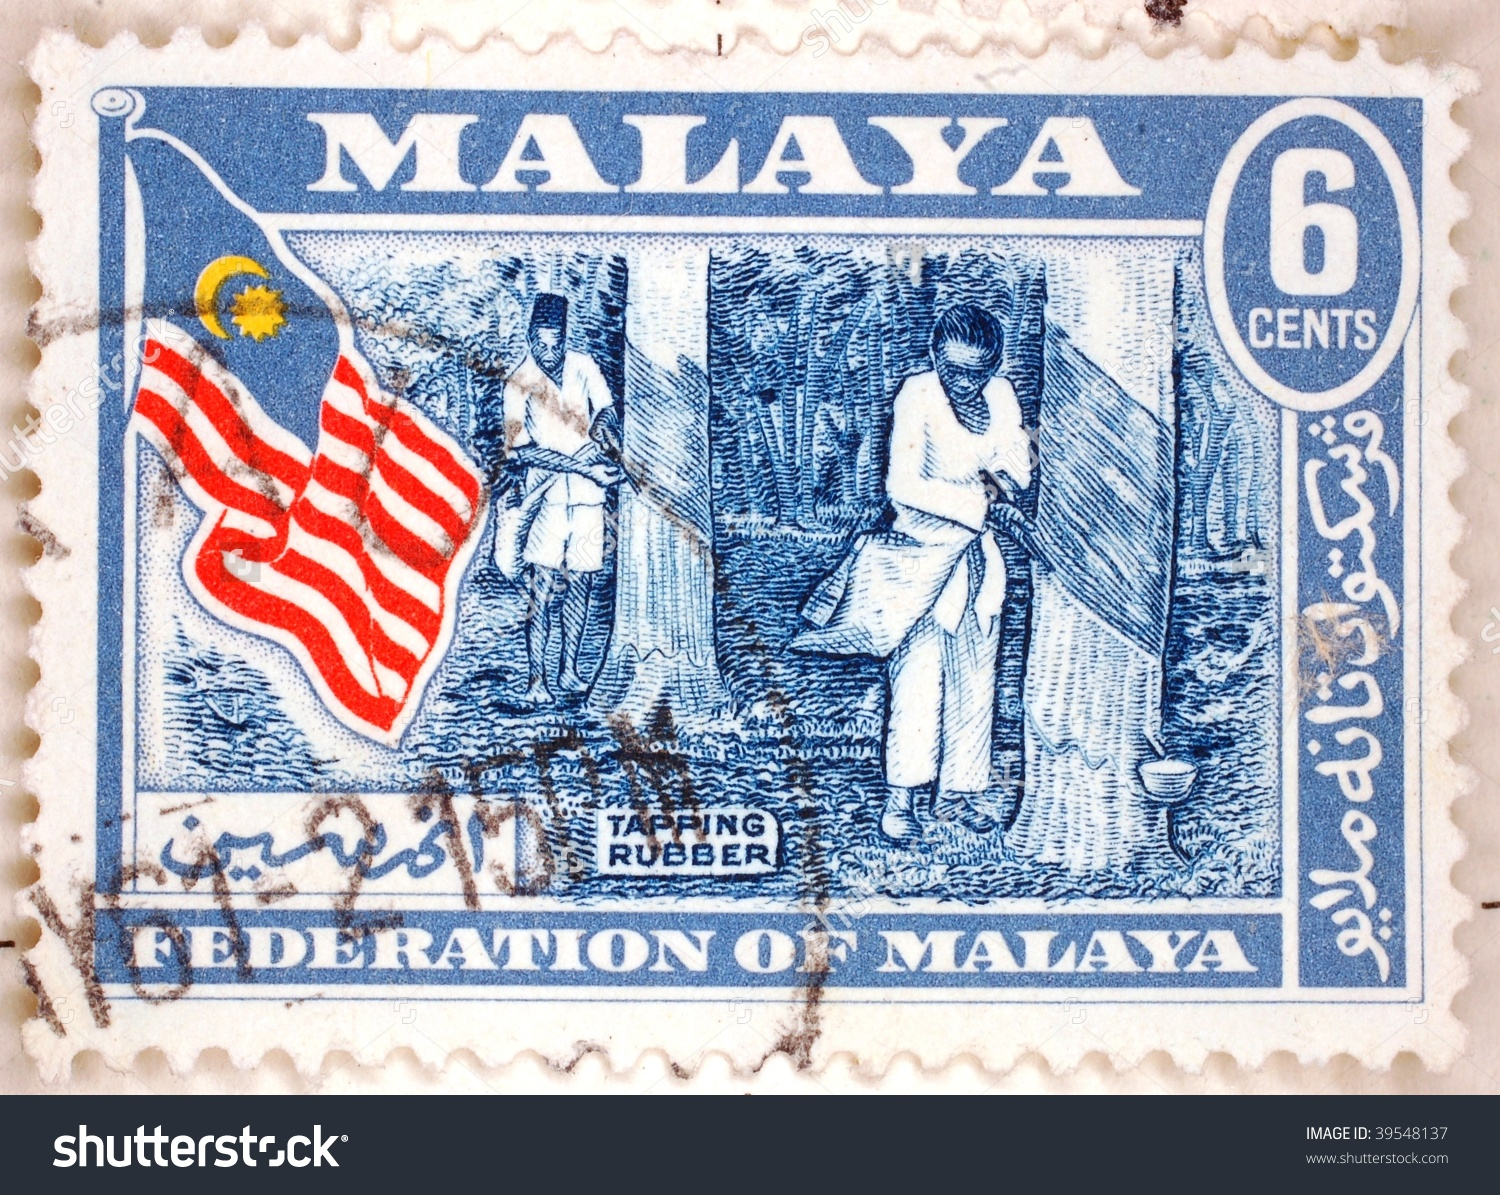 1948-02-01 Federation of Malaya foundation